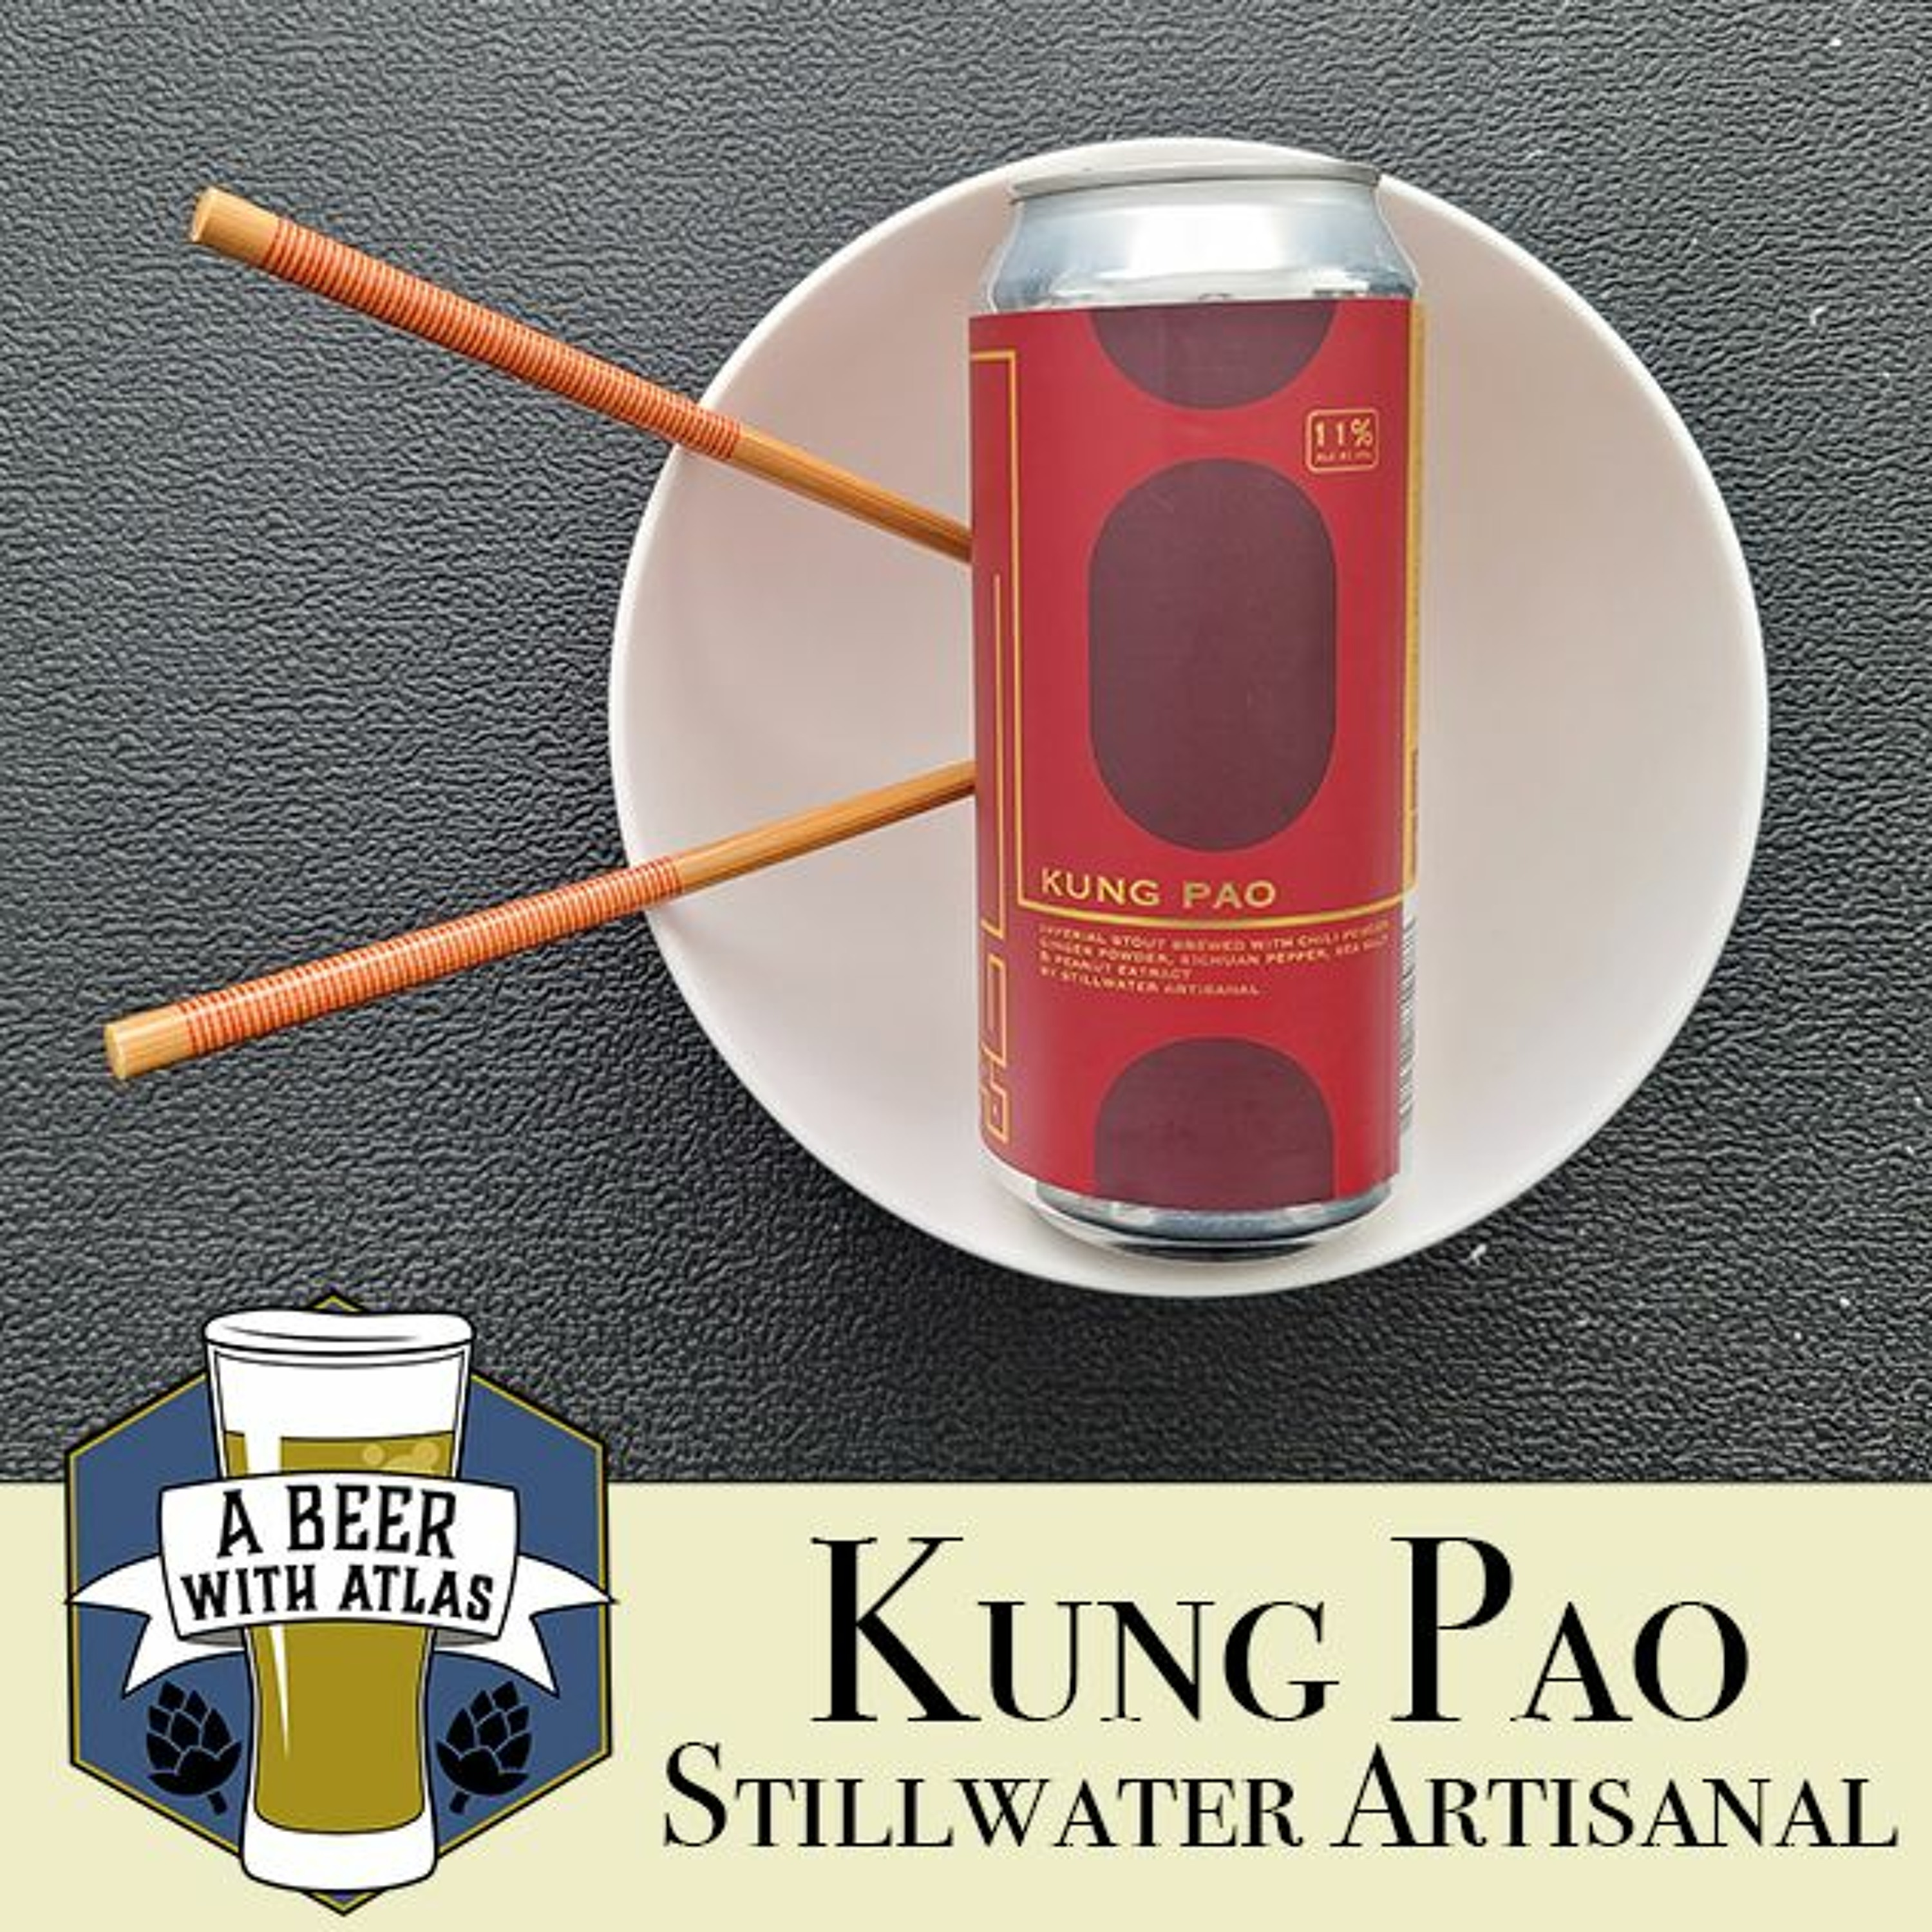 Kung Pao Imperial Stout, Stillwater Artisanal - Beer With Atlas 130 - craft beer for travel nurses